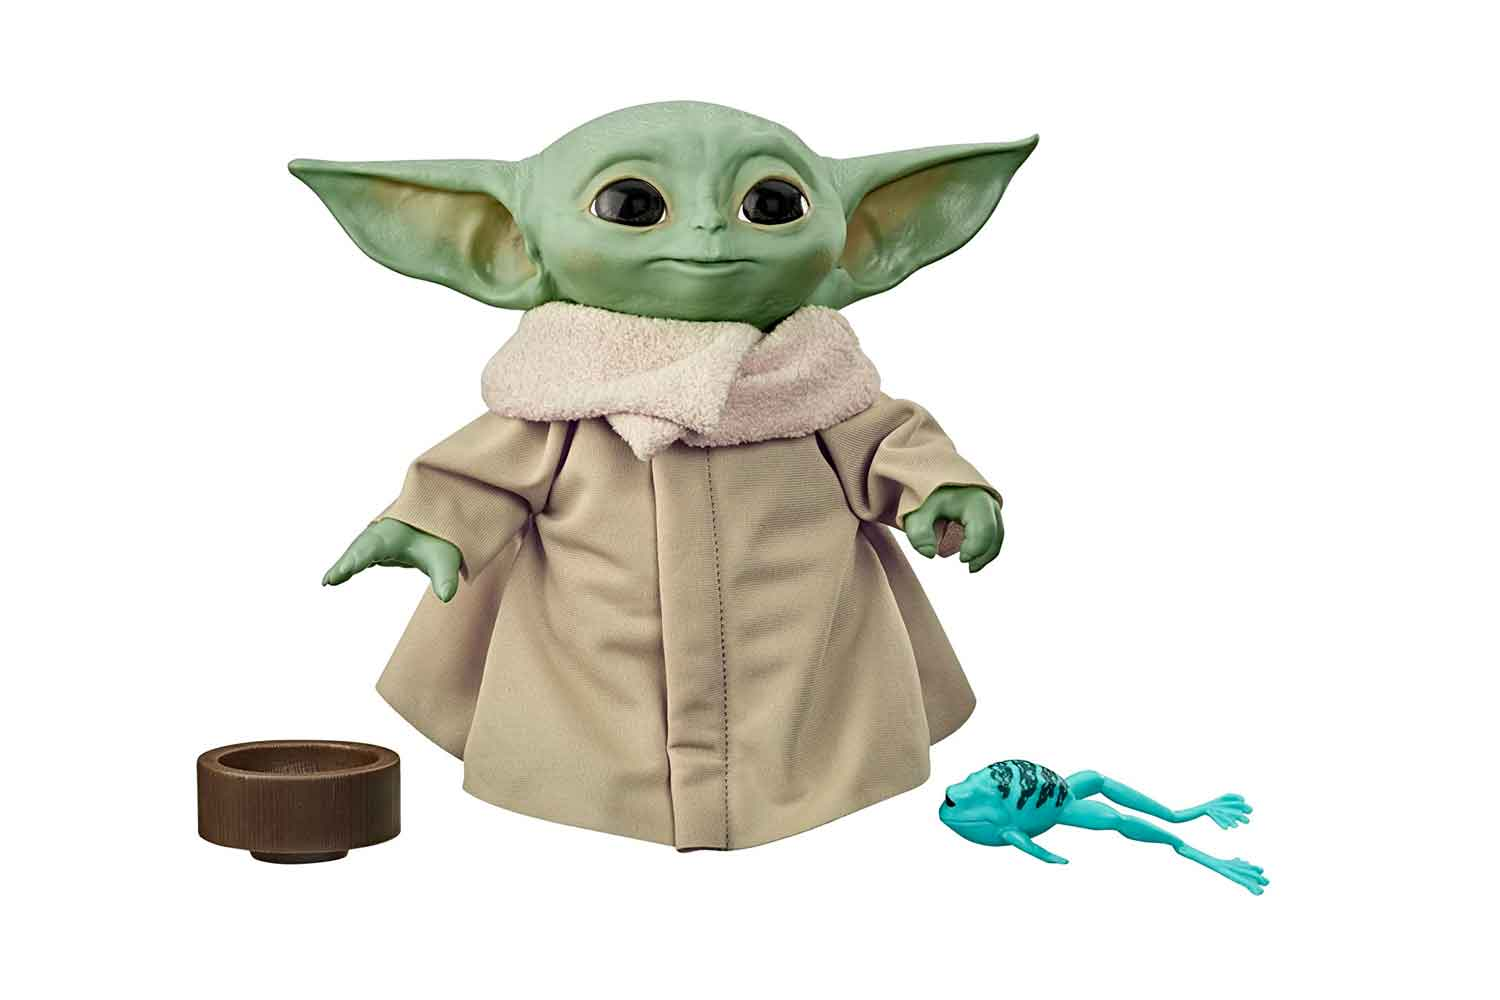 Star Wars The Child Talking Plush Toy with Character Sounds and Accessories, The Mandalorian Toy for Kids Ages 3 and Up